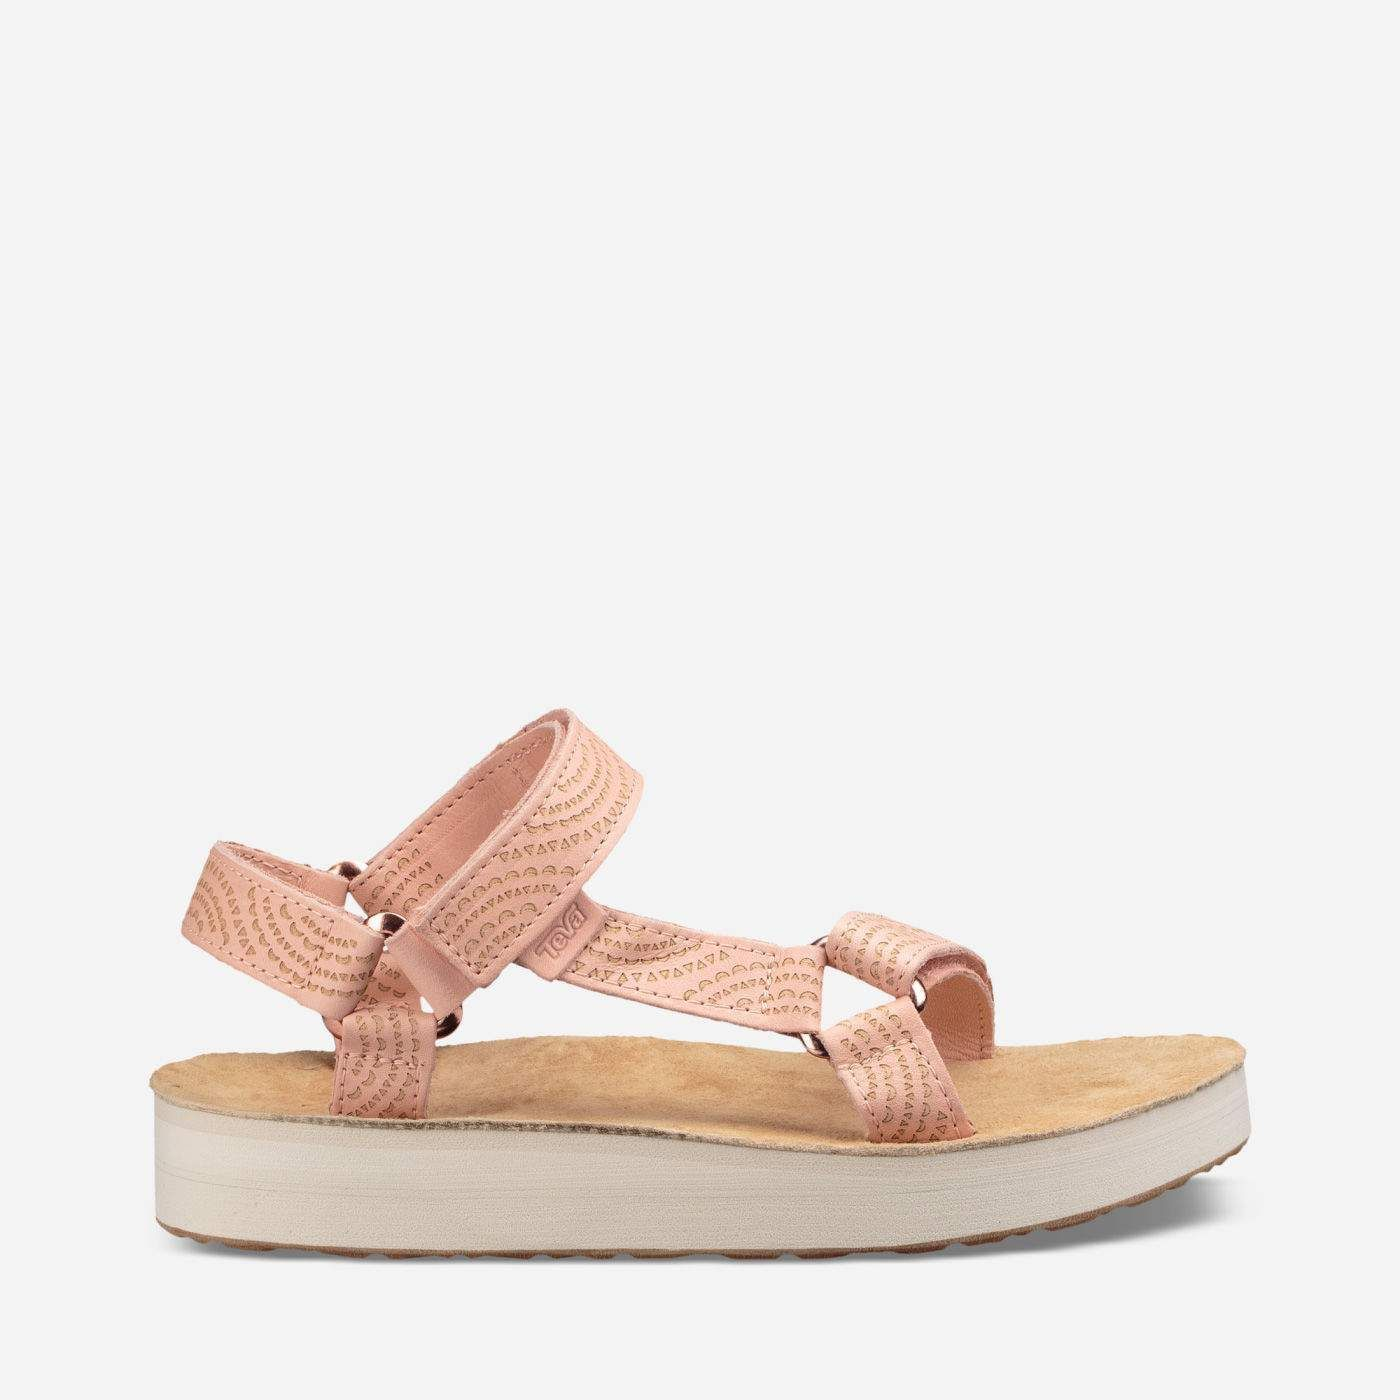 Shop our collection of Women's Sandals, including the